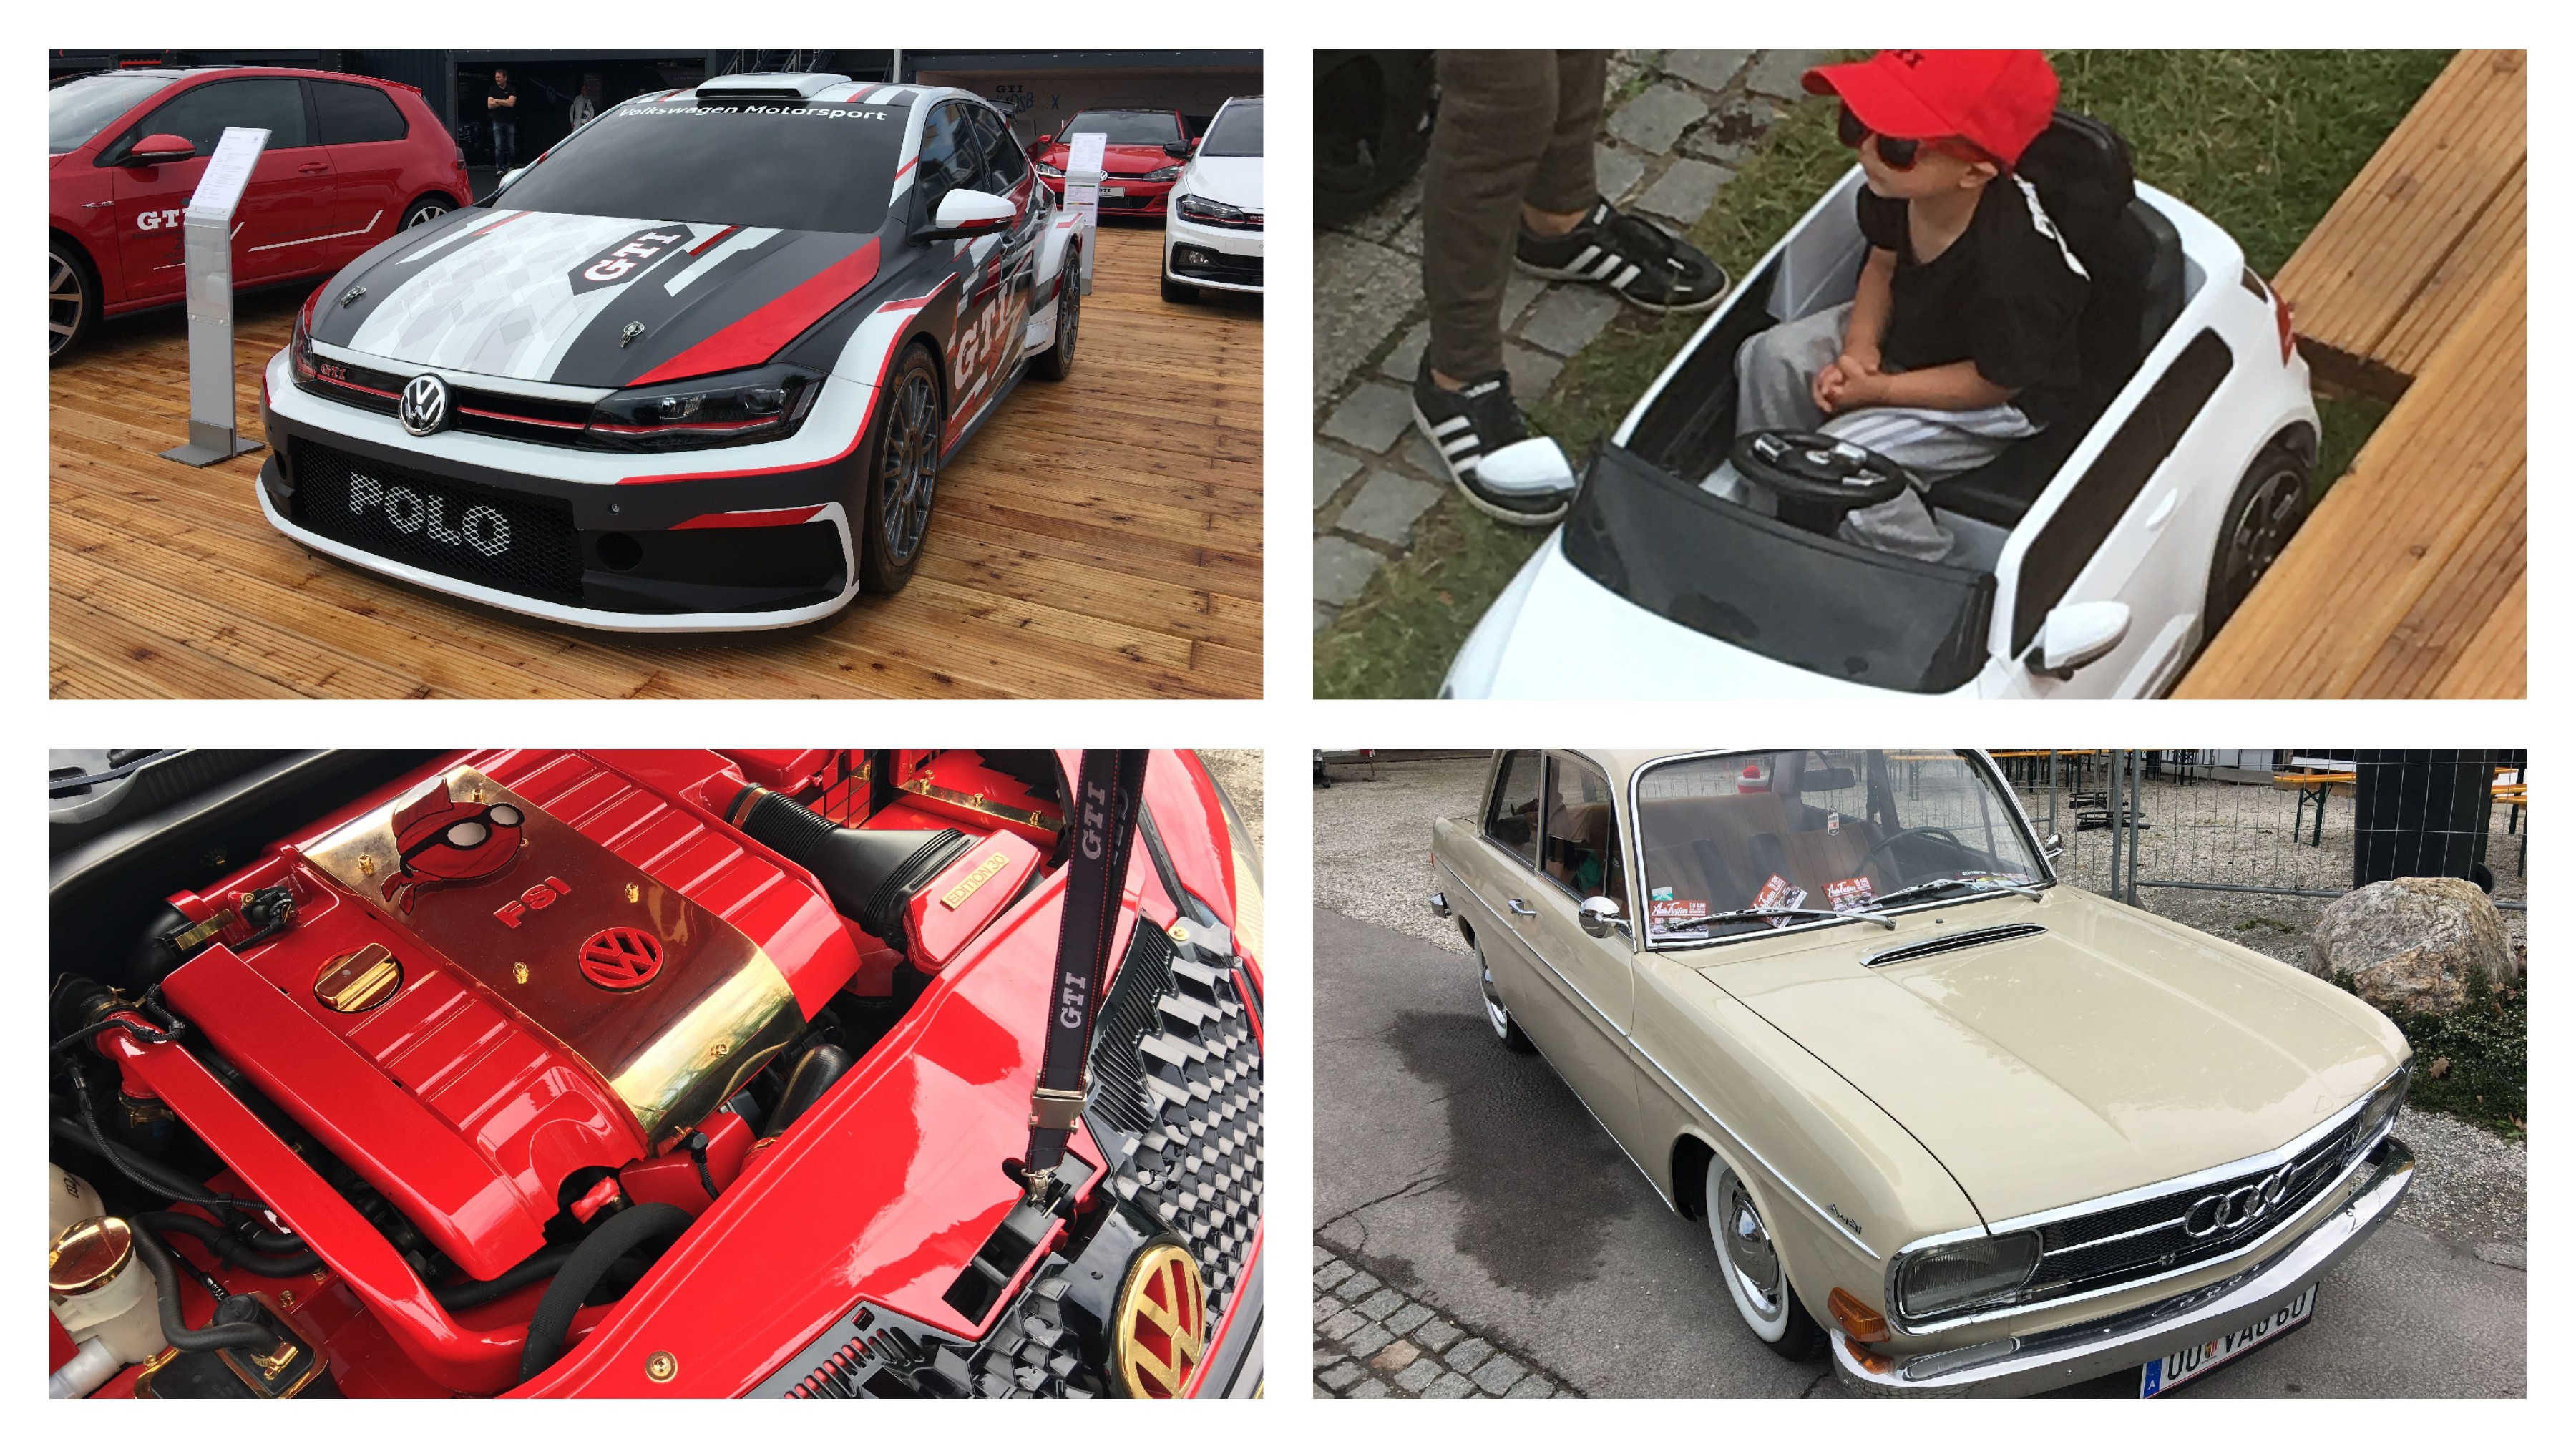 37.GTI Treffen_Back to the roots